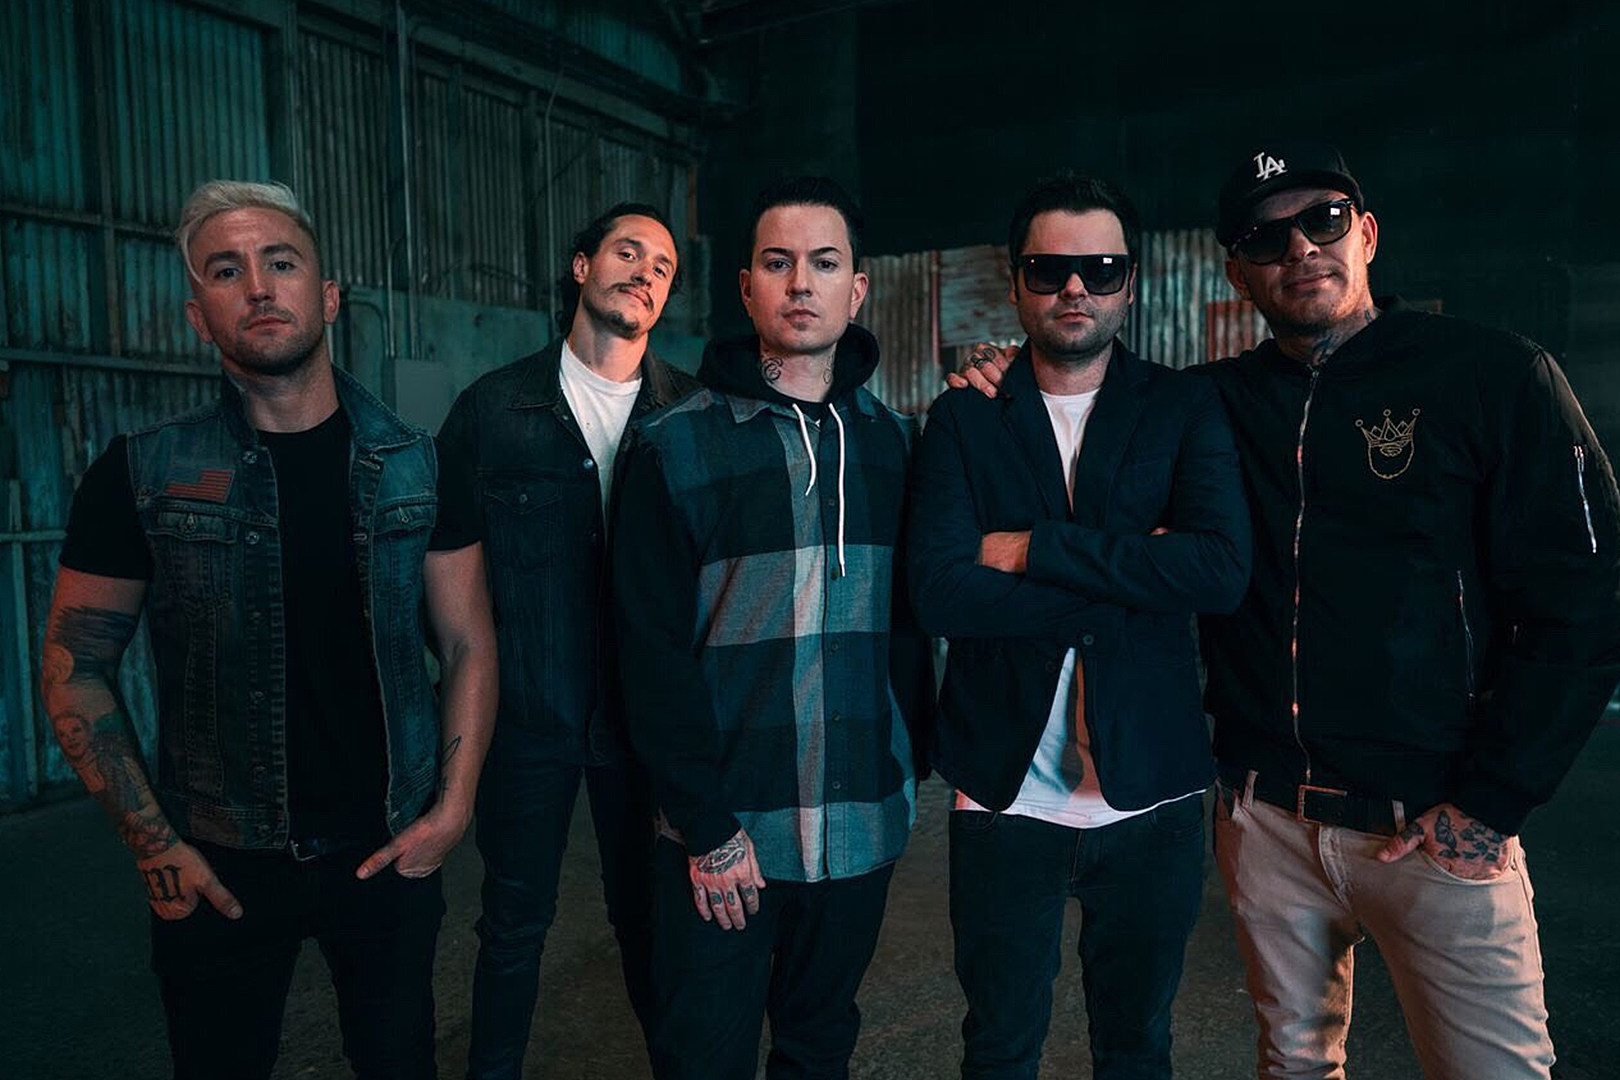 Hollywood Undead New Album 2019 INTERVIEW: Hollywood Undead talks the music industry and new music